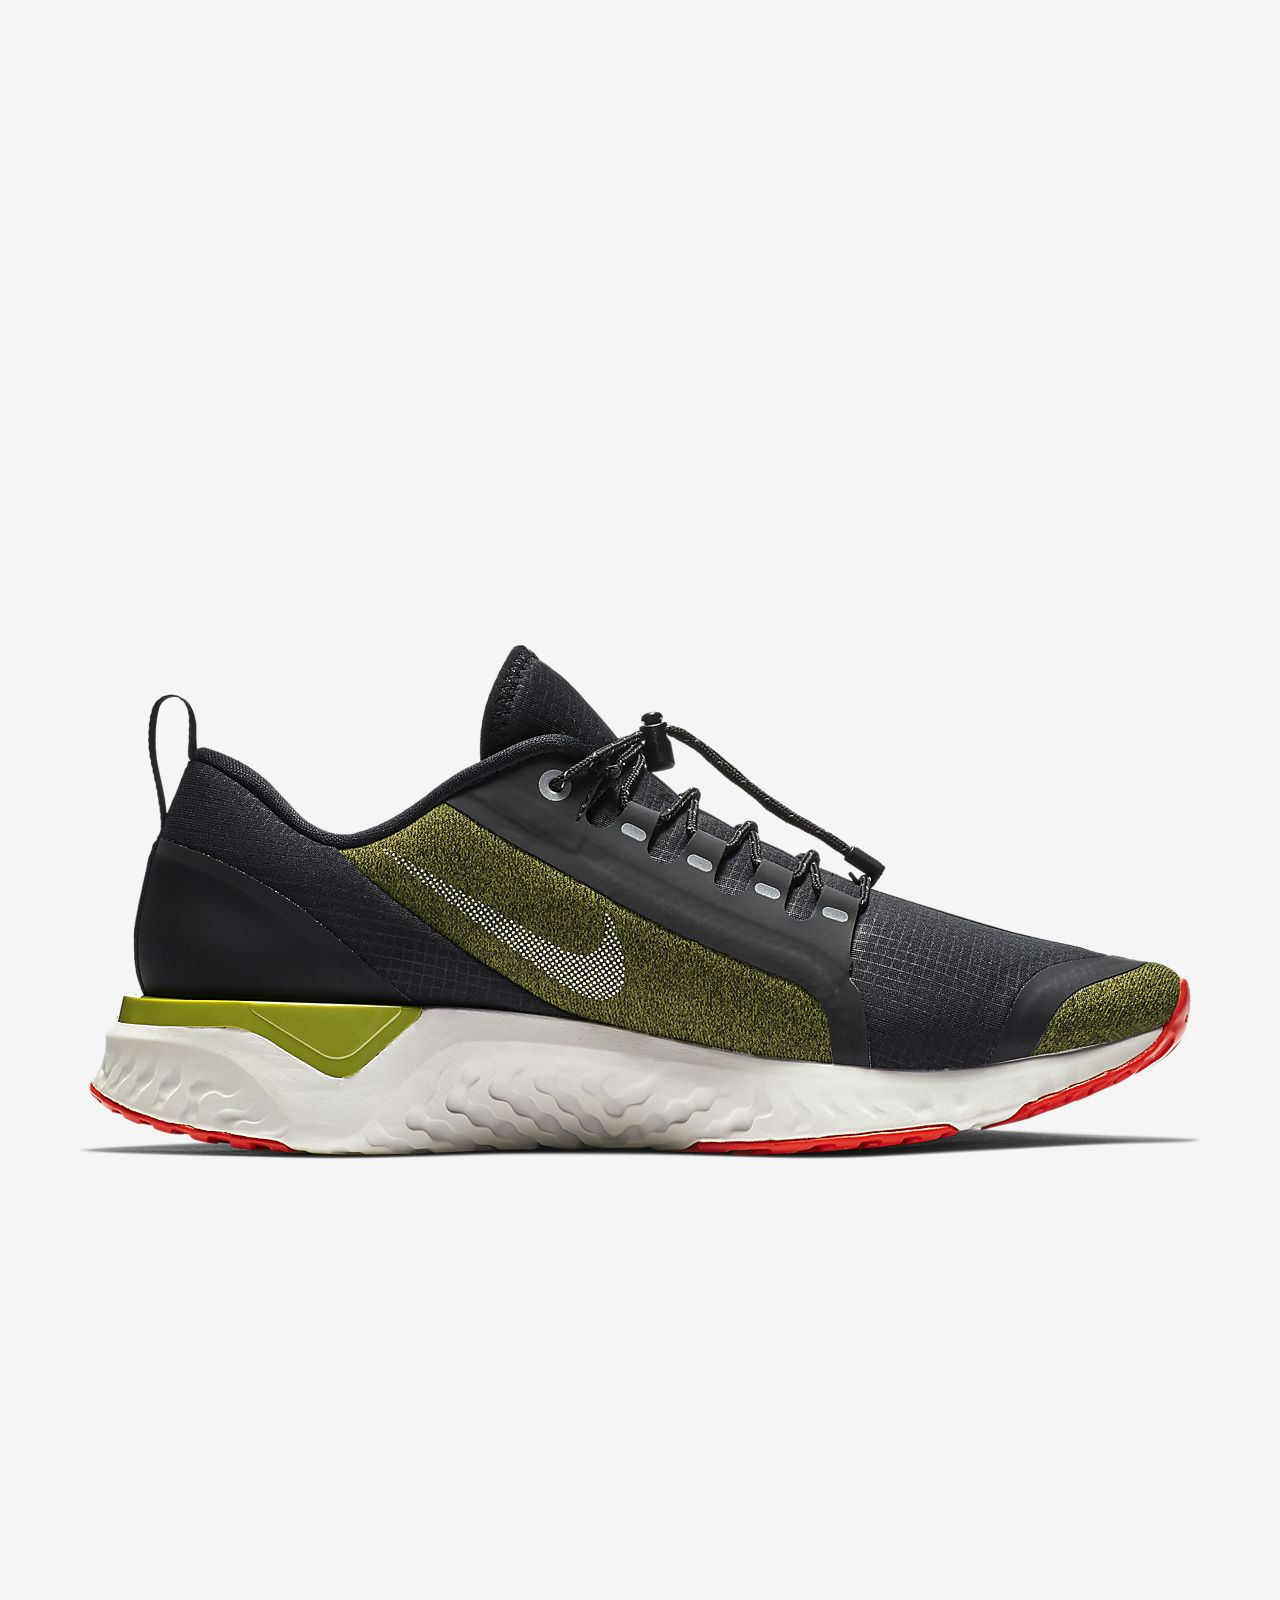 sports shoes cbb13 6d743 ... Nike Odyssey React Shield Water-Repellent Men s Running Shoe